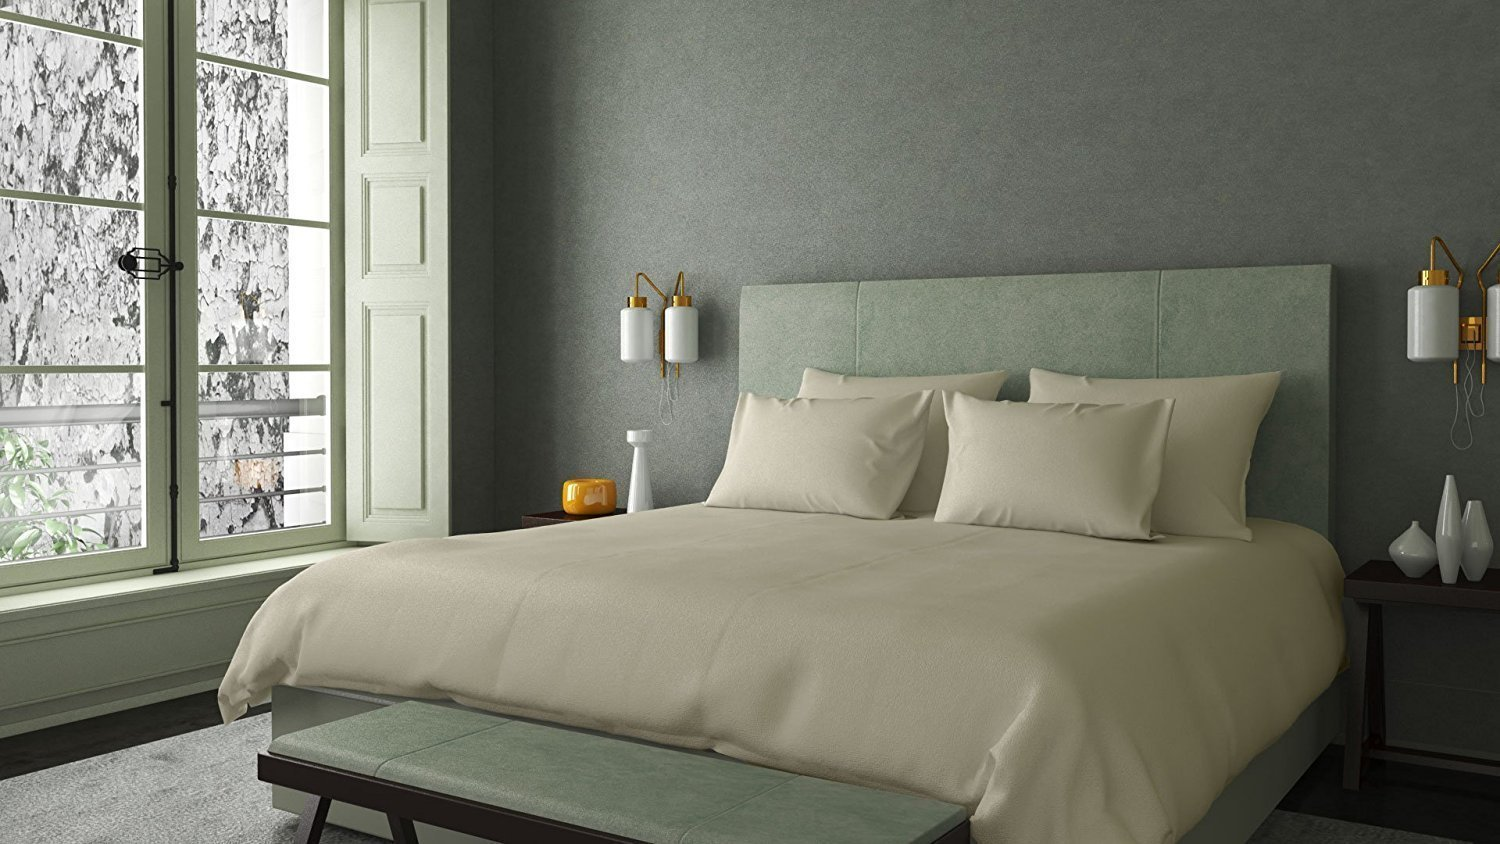 1500 Thread Count 4-PCs Sheet Set With Queen, Ivory